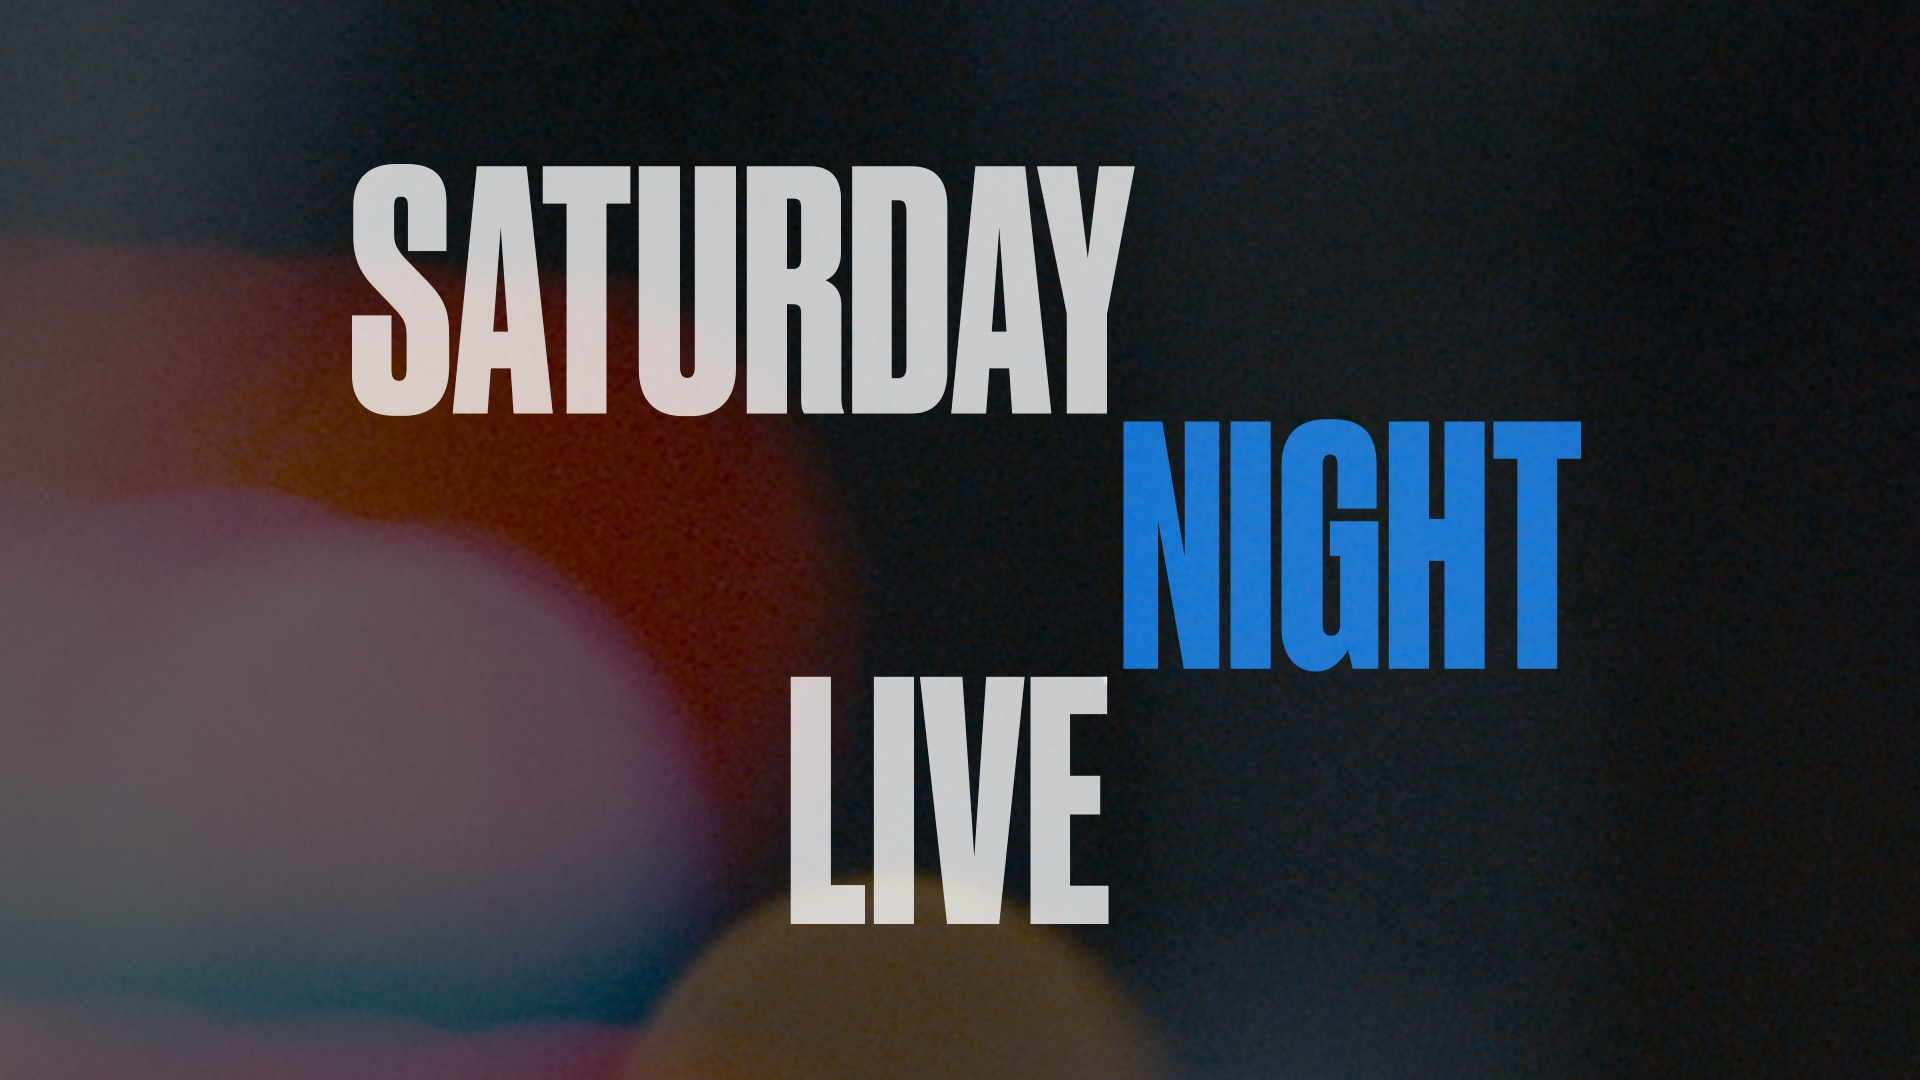 Saturday Night Live Nbc Com